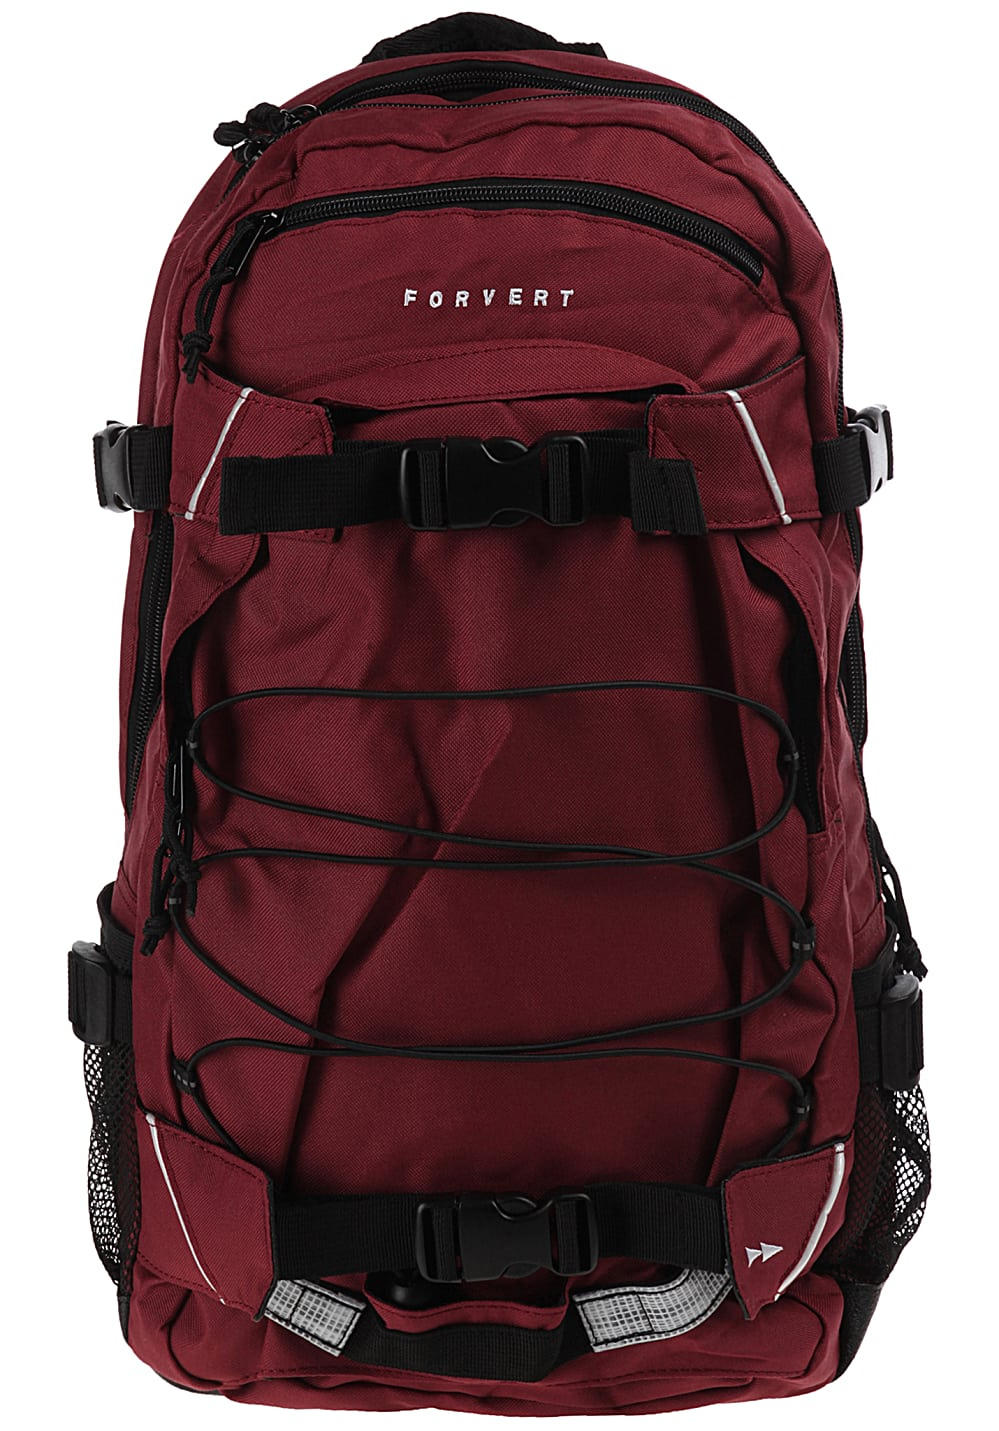 Forvert Laptop Louis 25L Laptoprucksack - Rot